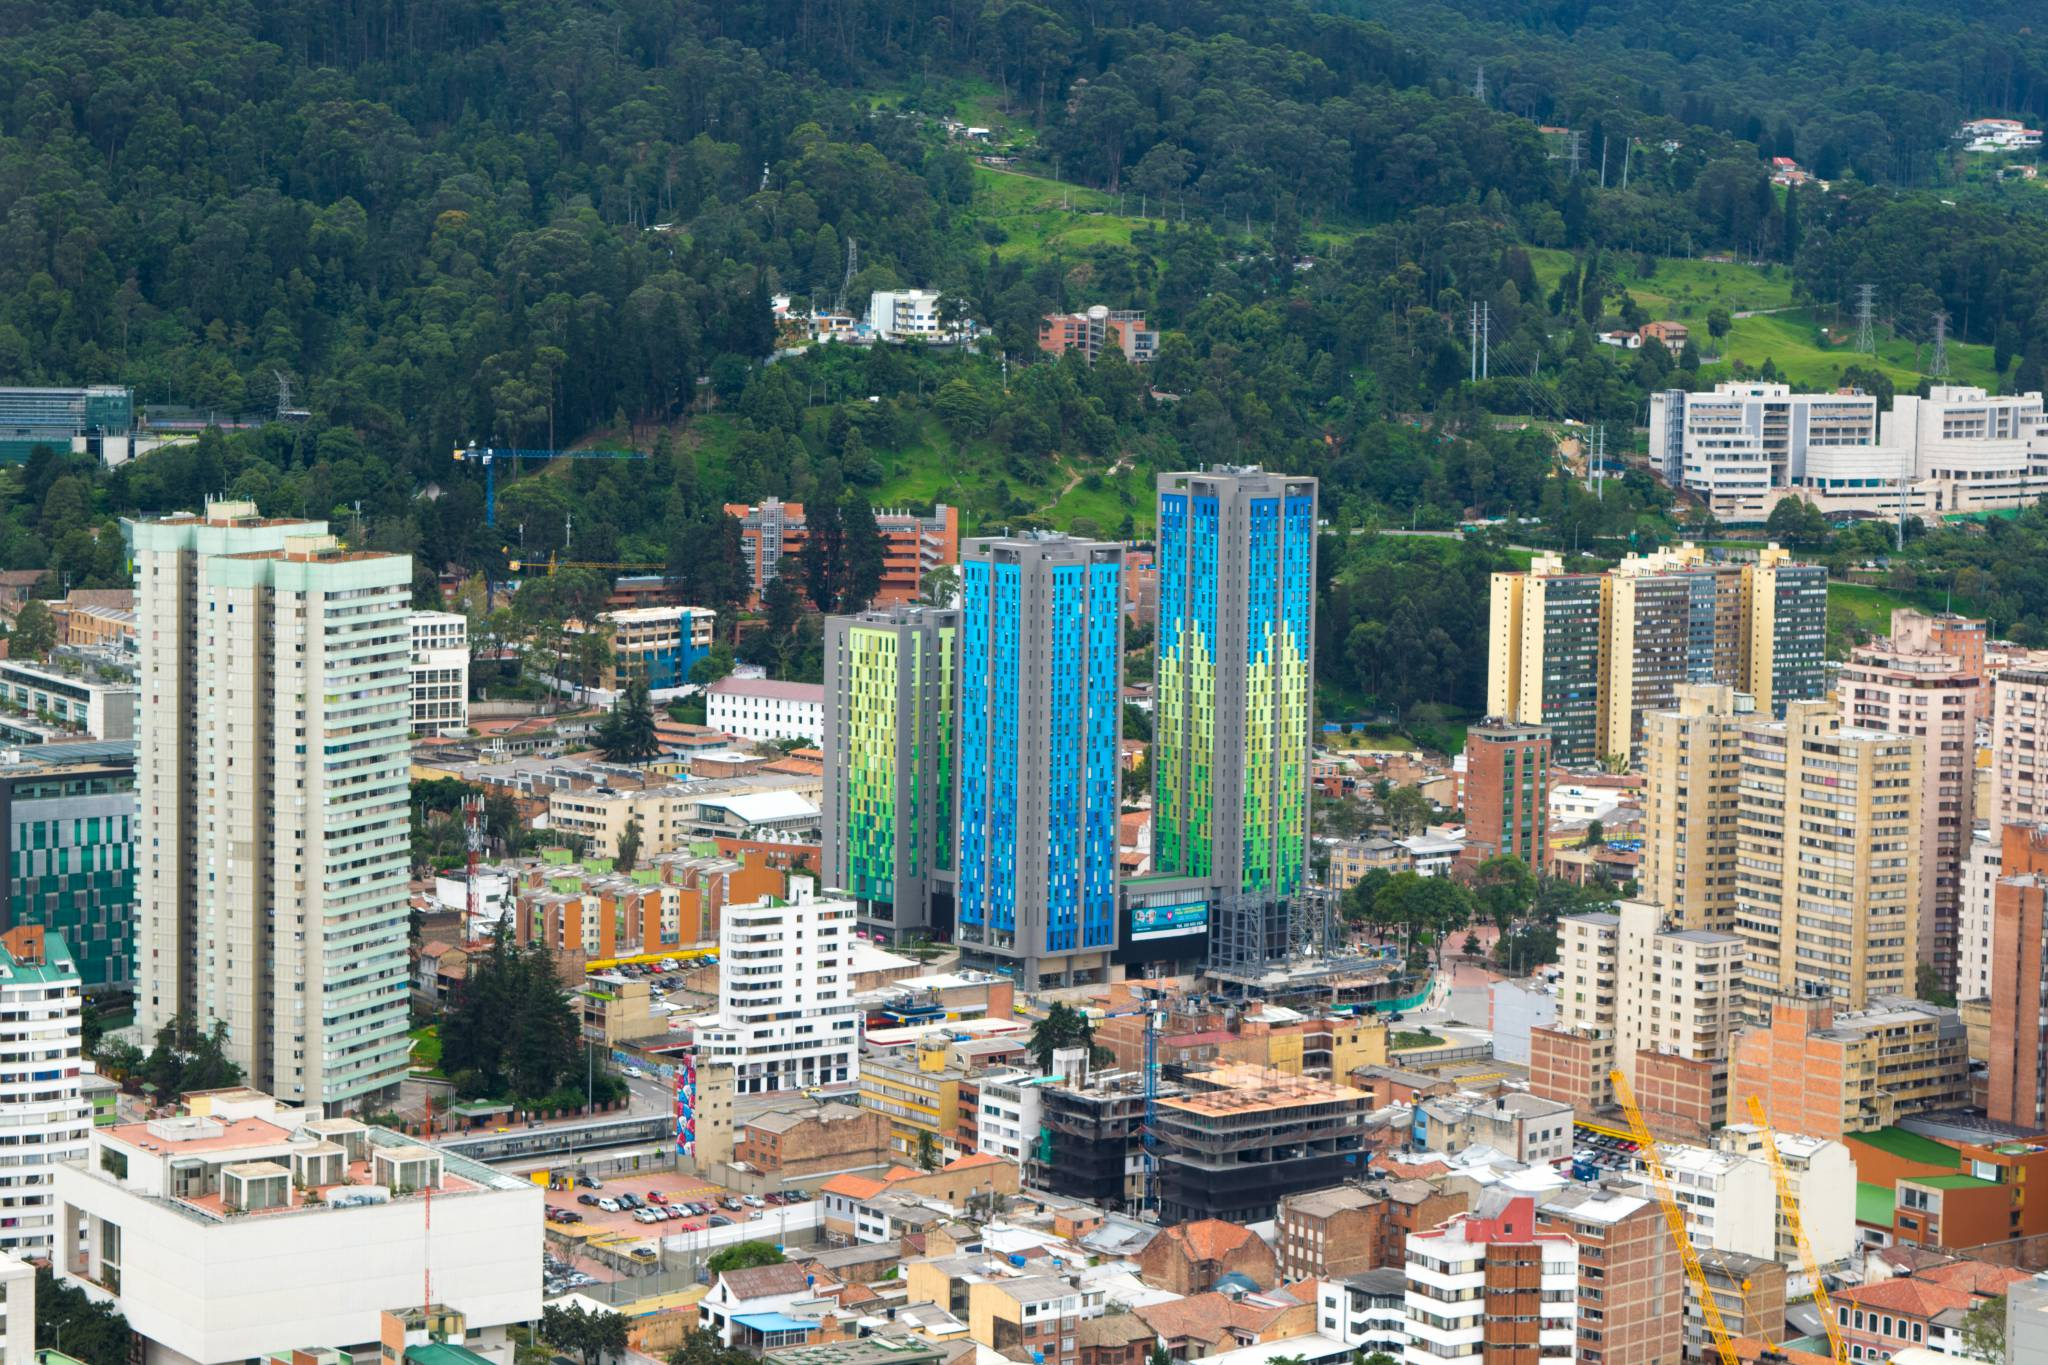 Travel to Bogota with our Travel Guide